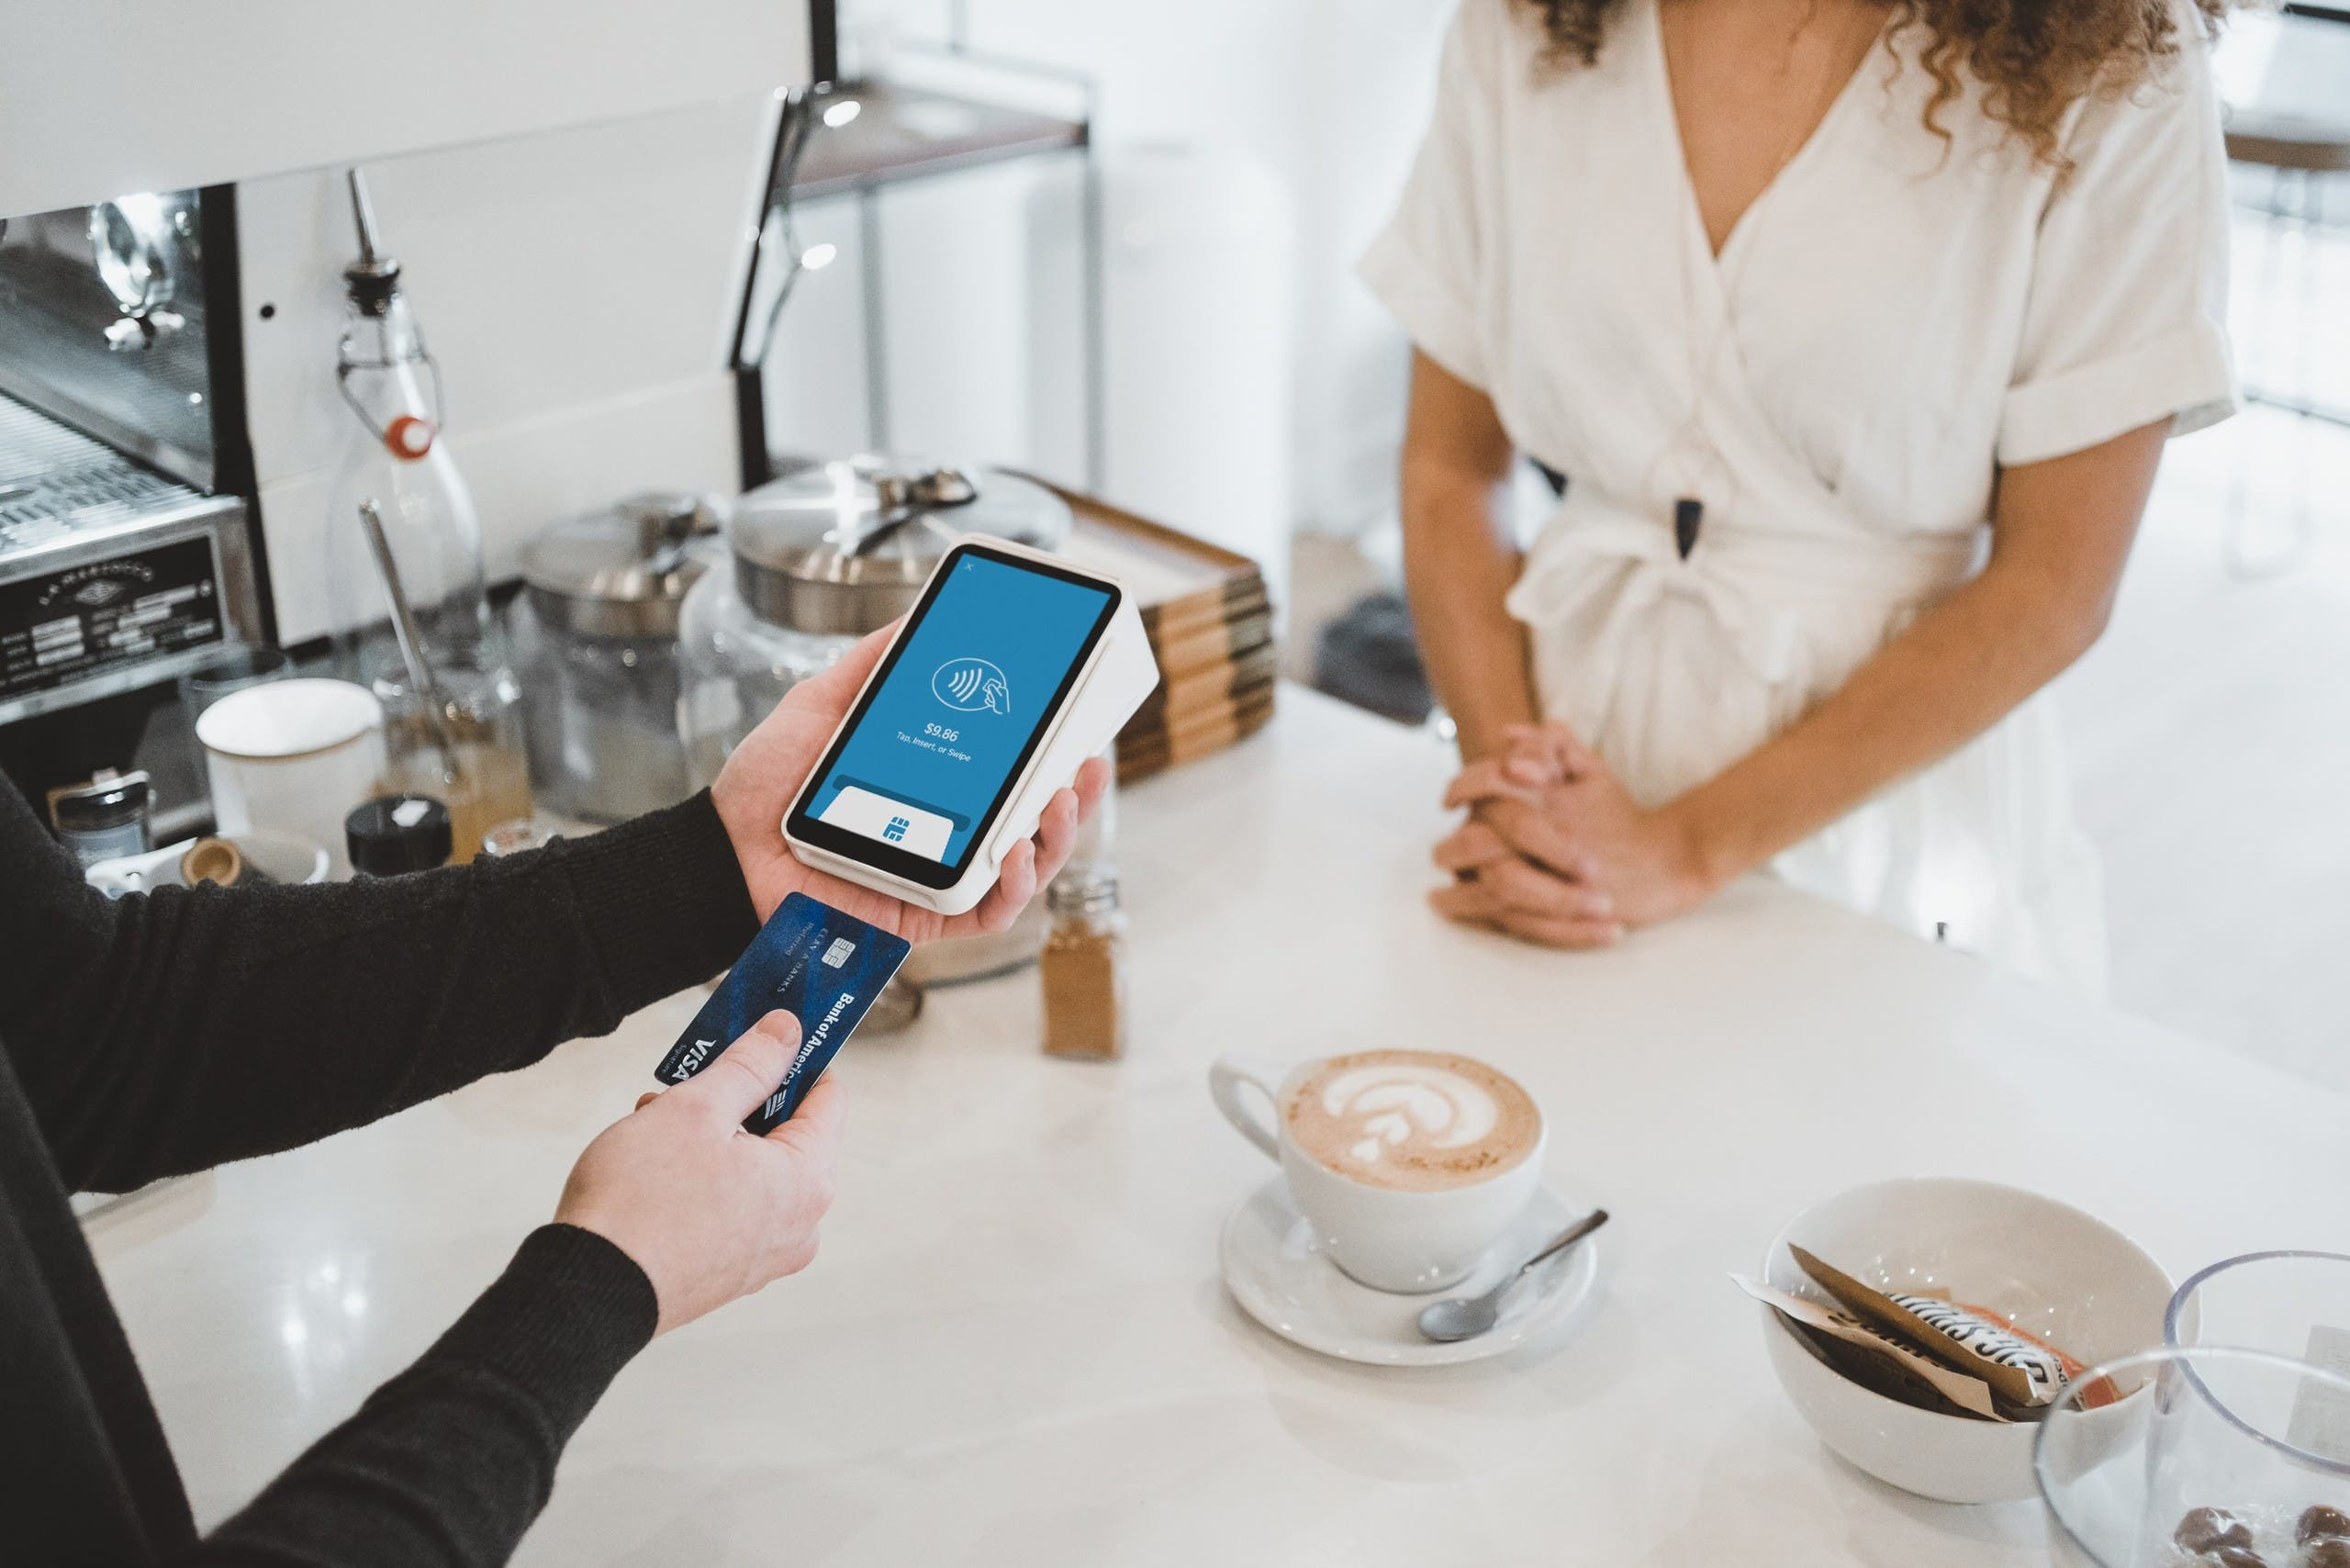 Woman makes a payment using her card at a coffee shop. (Unsplash, Clay Banks)